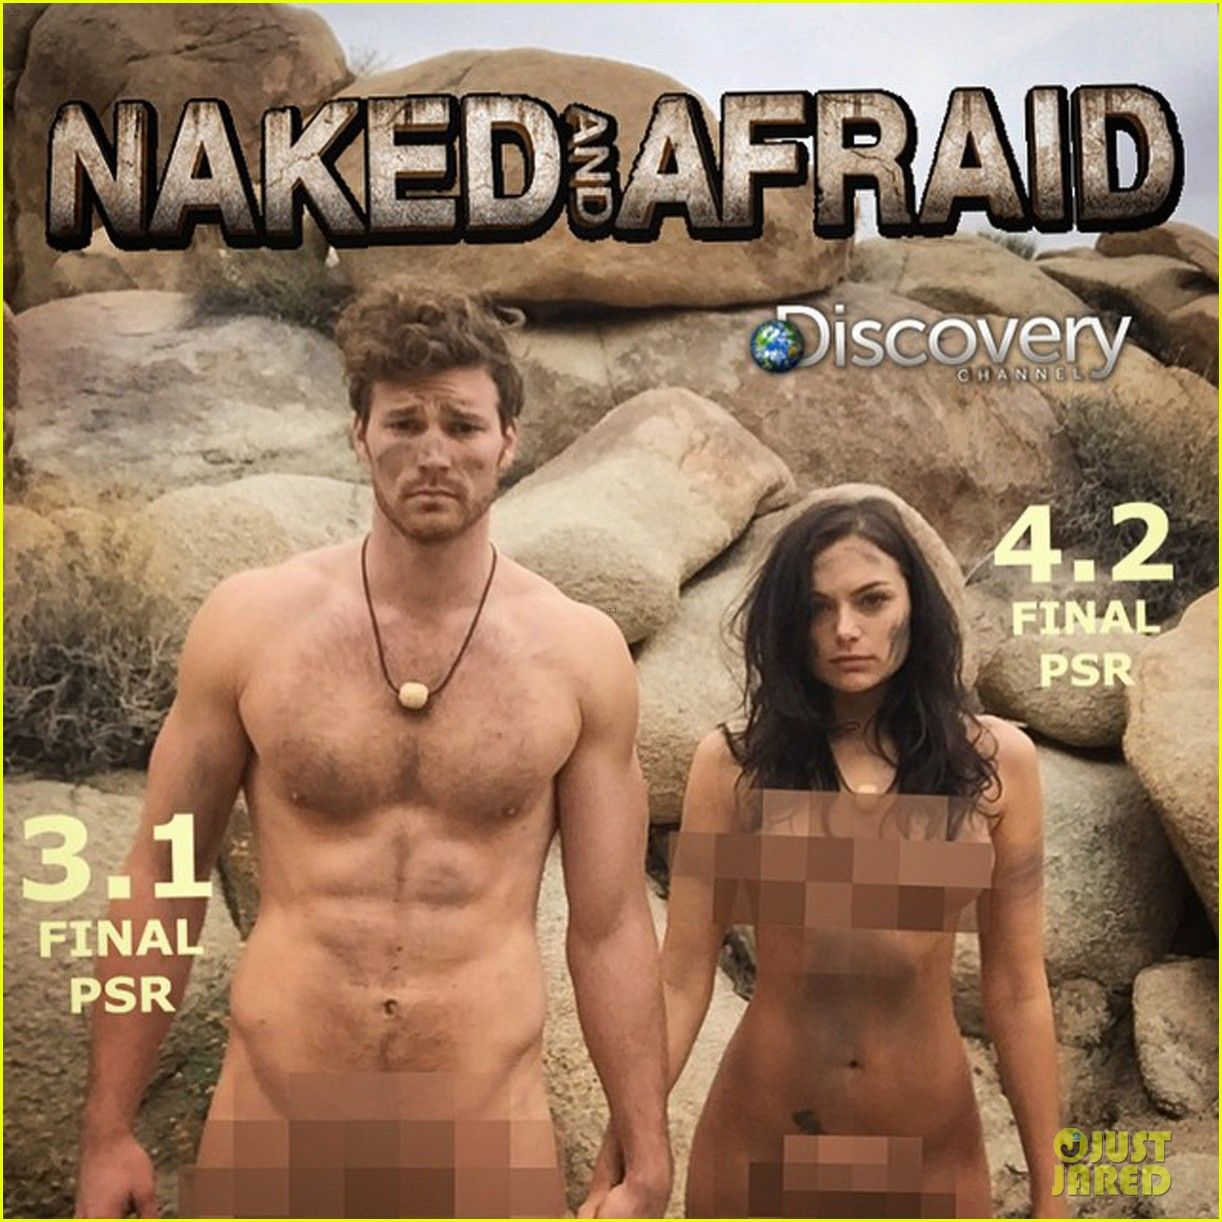 Aunt naked and afraid nude hot